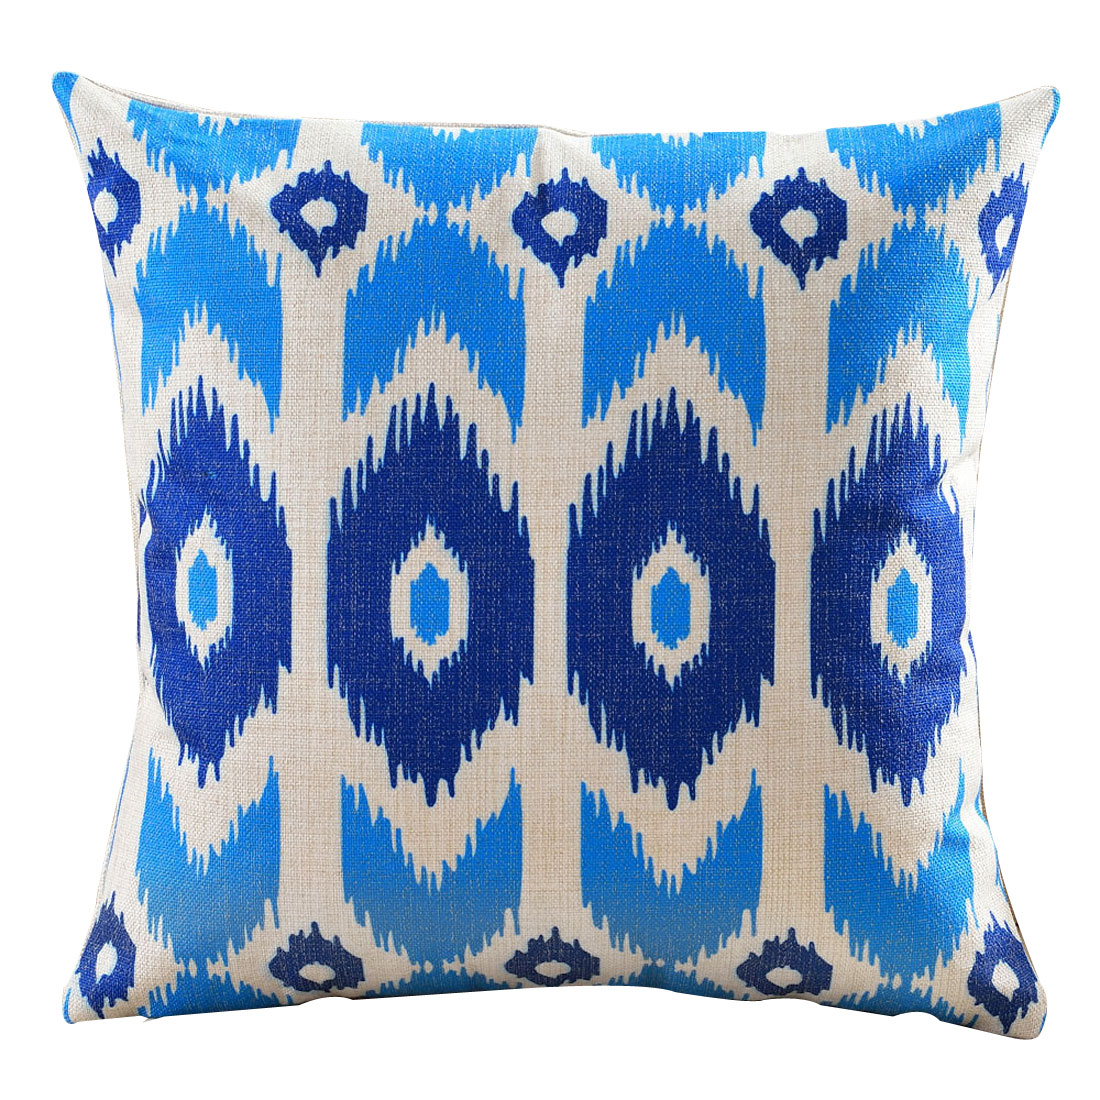 Sofa Cotton Linen Square Design Northern Europe Abstract Style Pillow Cover Decor